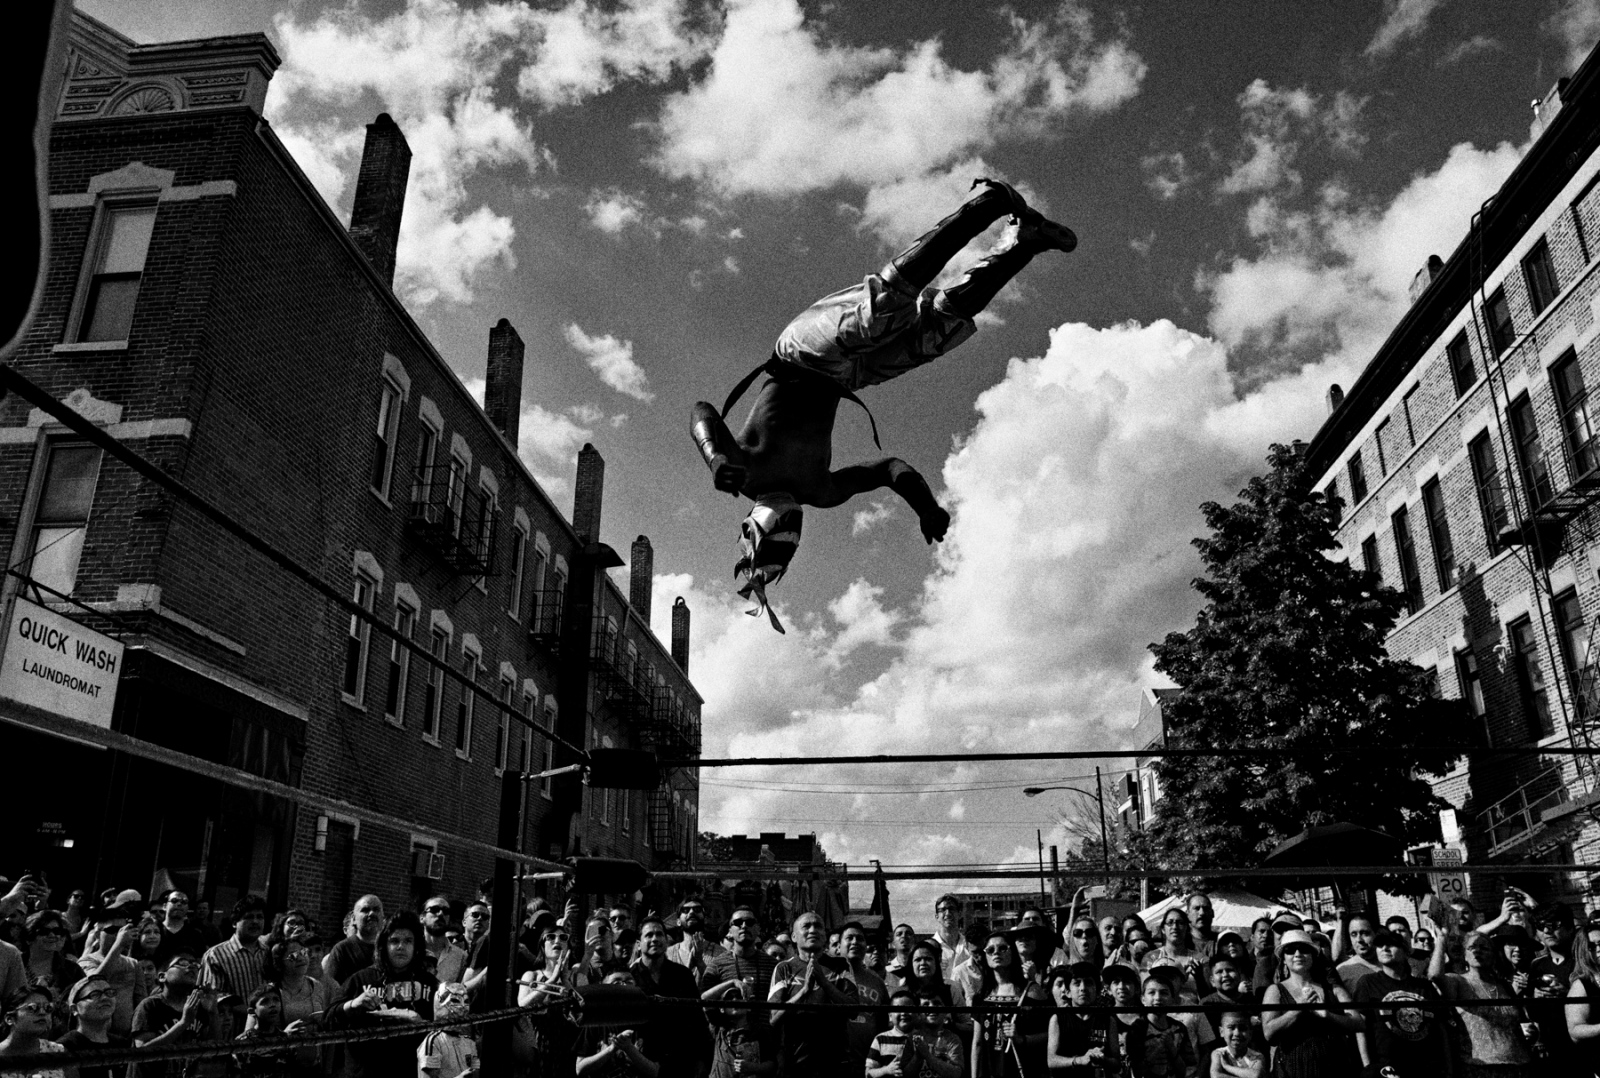 During the Mole de Mayo, a yearly mole sauce competition in the Pilsen neighborhood in Chicago, a luchador demonstrates his high flying aerial jump during a Lucha Libre show.